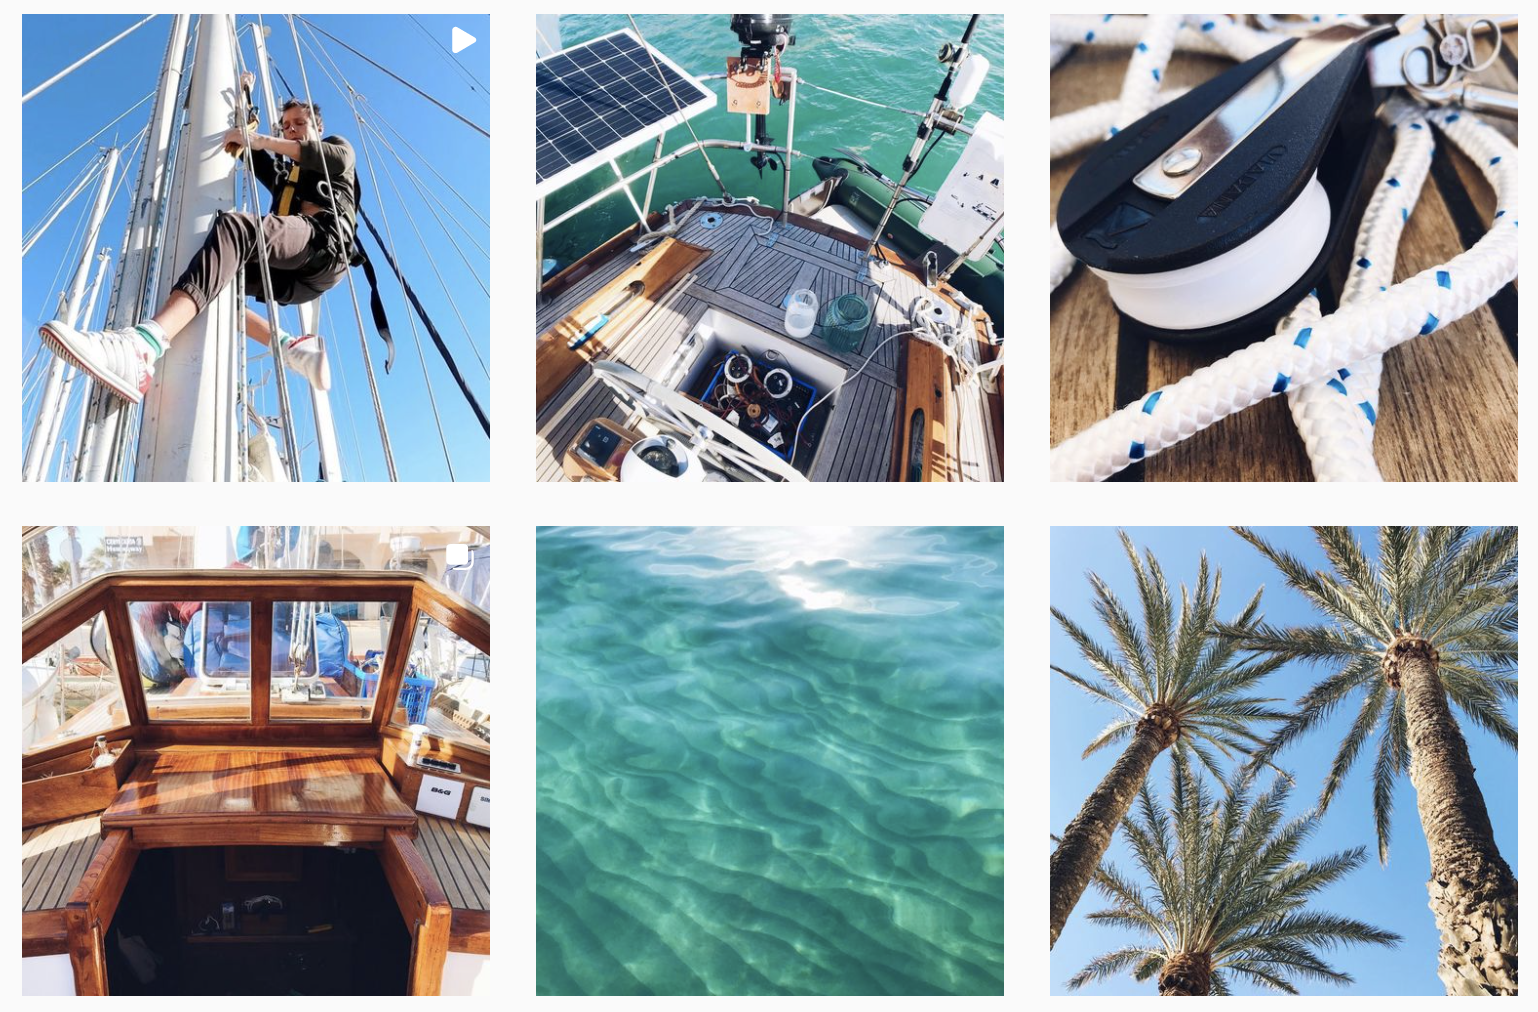 CAPTURE FROM Kathi & Max's INSTAGRAM 'Sailing Makani'